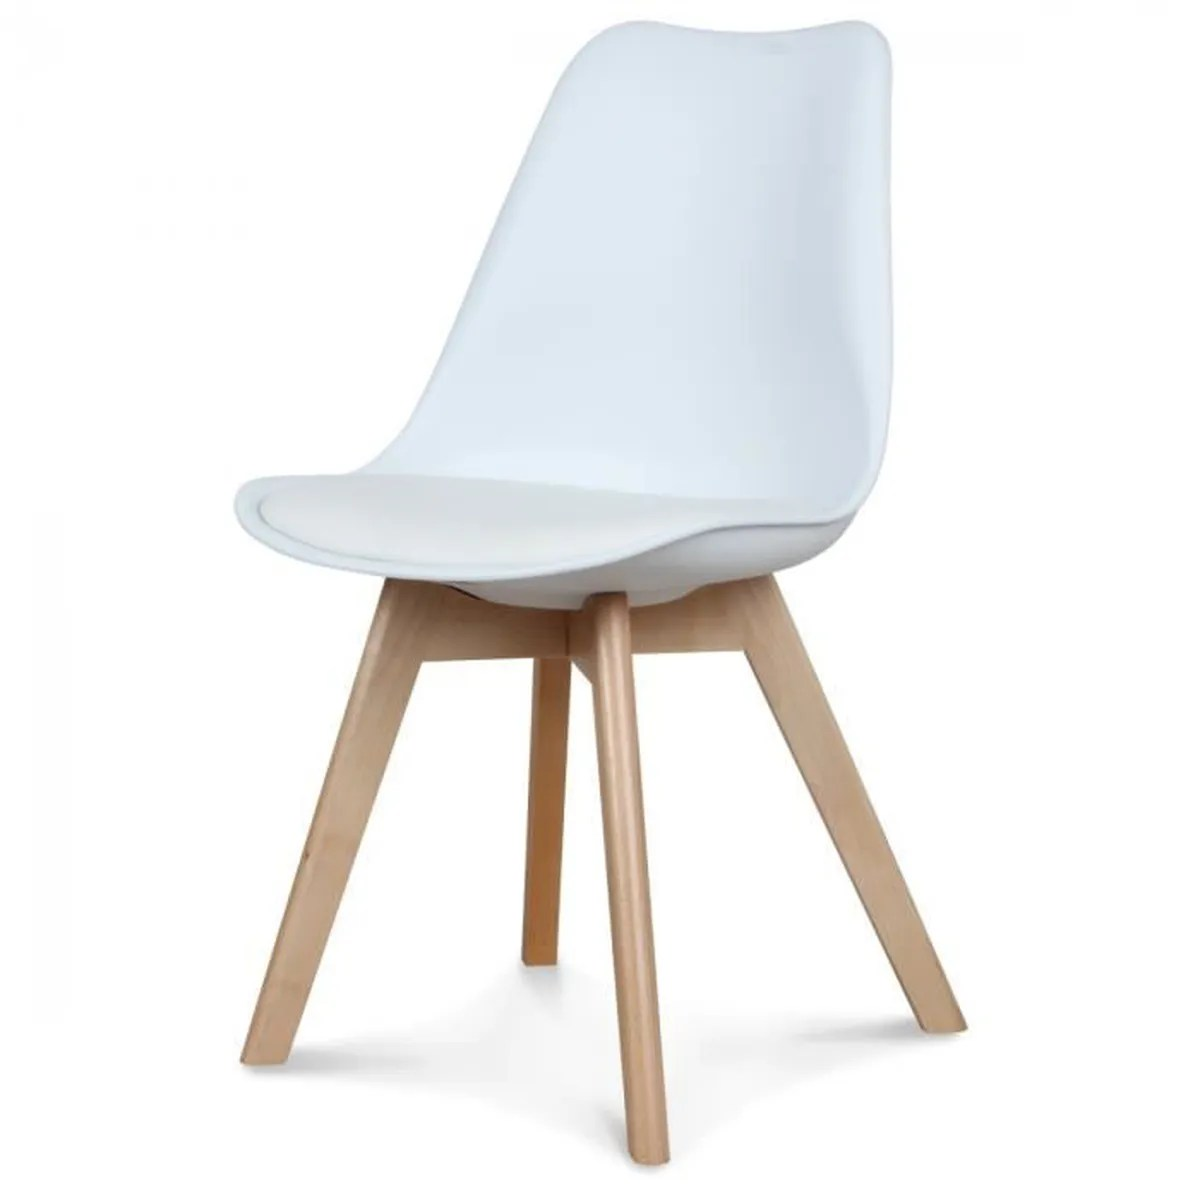 Chaise Blanche Cdiscount Chaise Scandinave Blanche Achat Vente Chaise